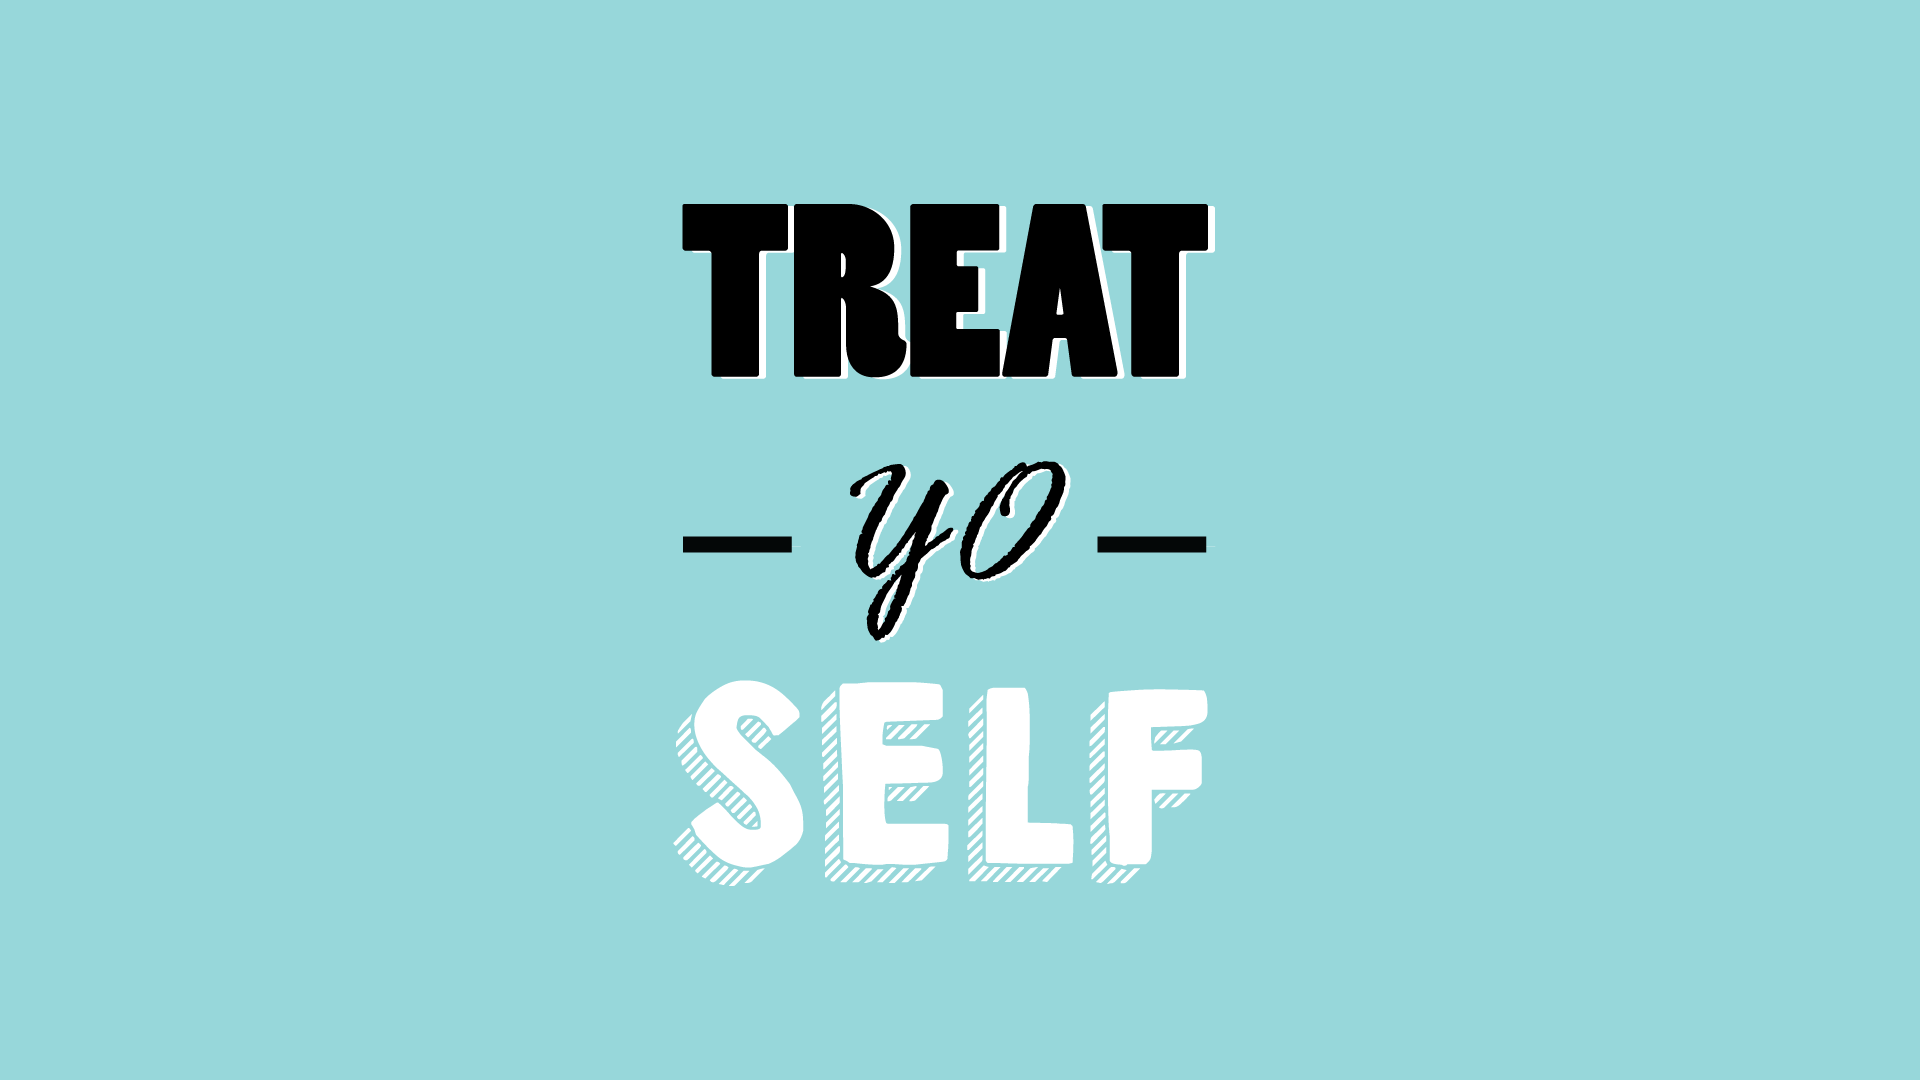 Treat-Yo-Self - By Megan Kelly